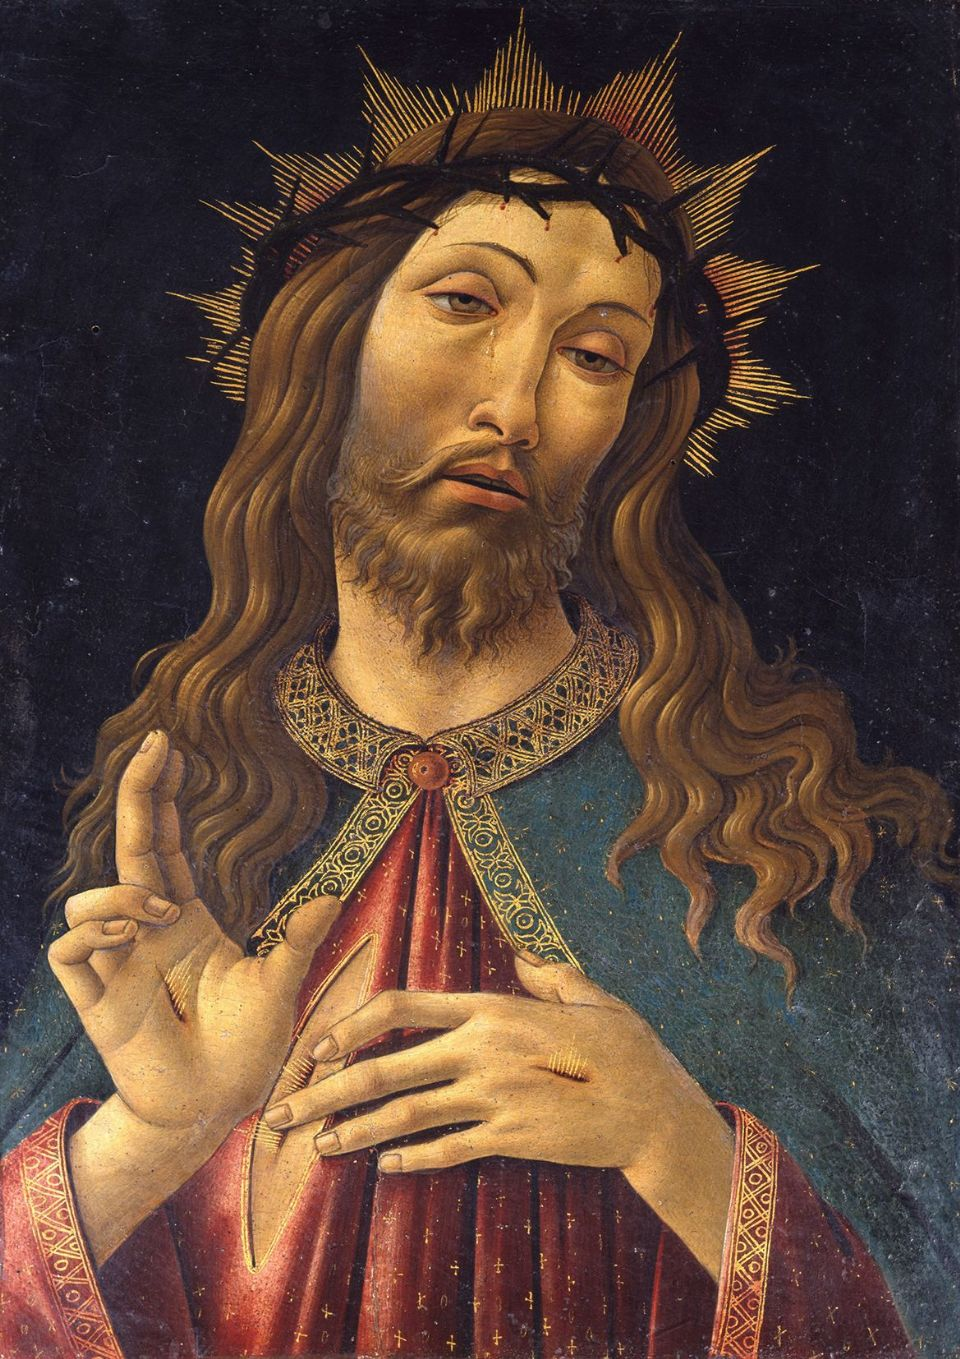 Botticelli, Sandro: Christ Crowned with Thorns. Fine Art Print/Poster. Sizes: A4/A3/A2/A1 (001882)